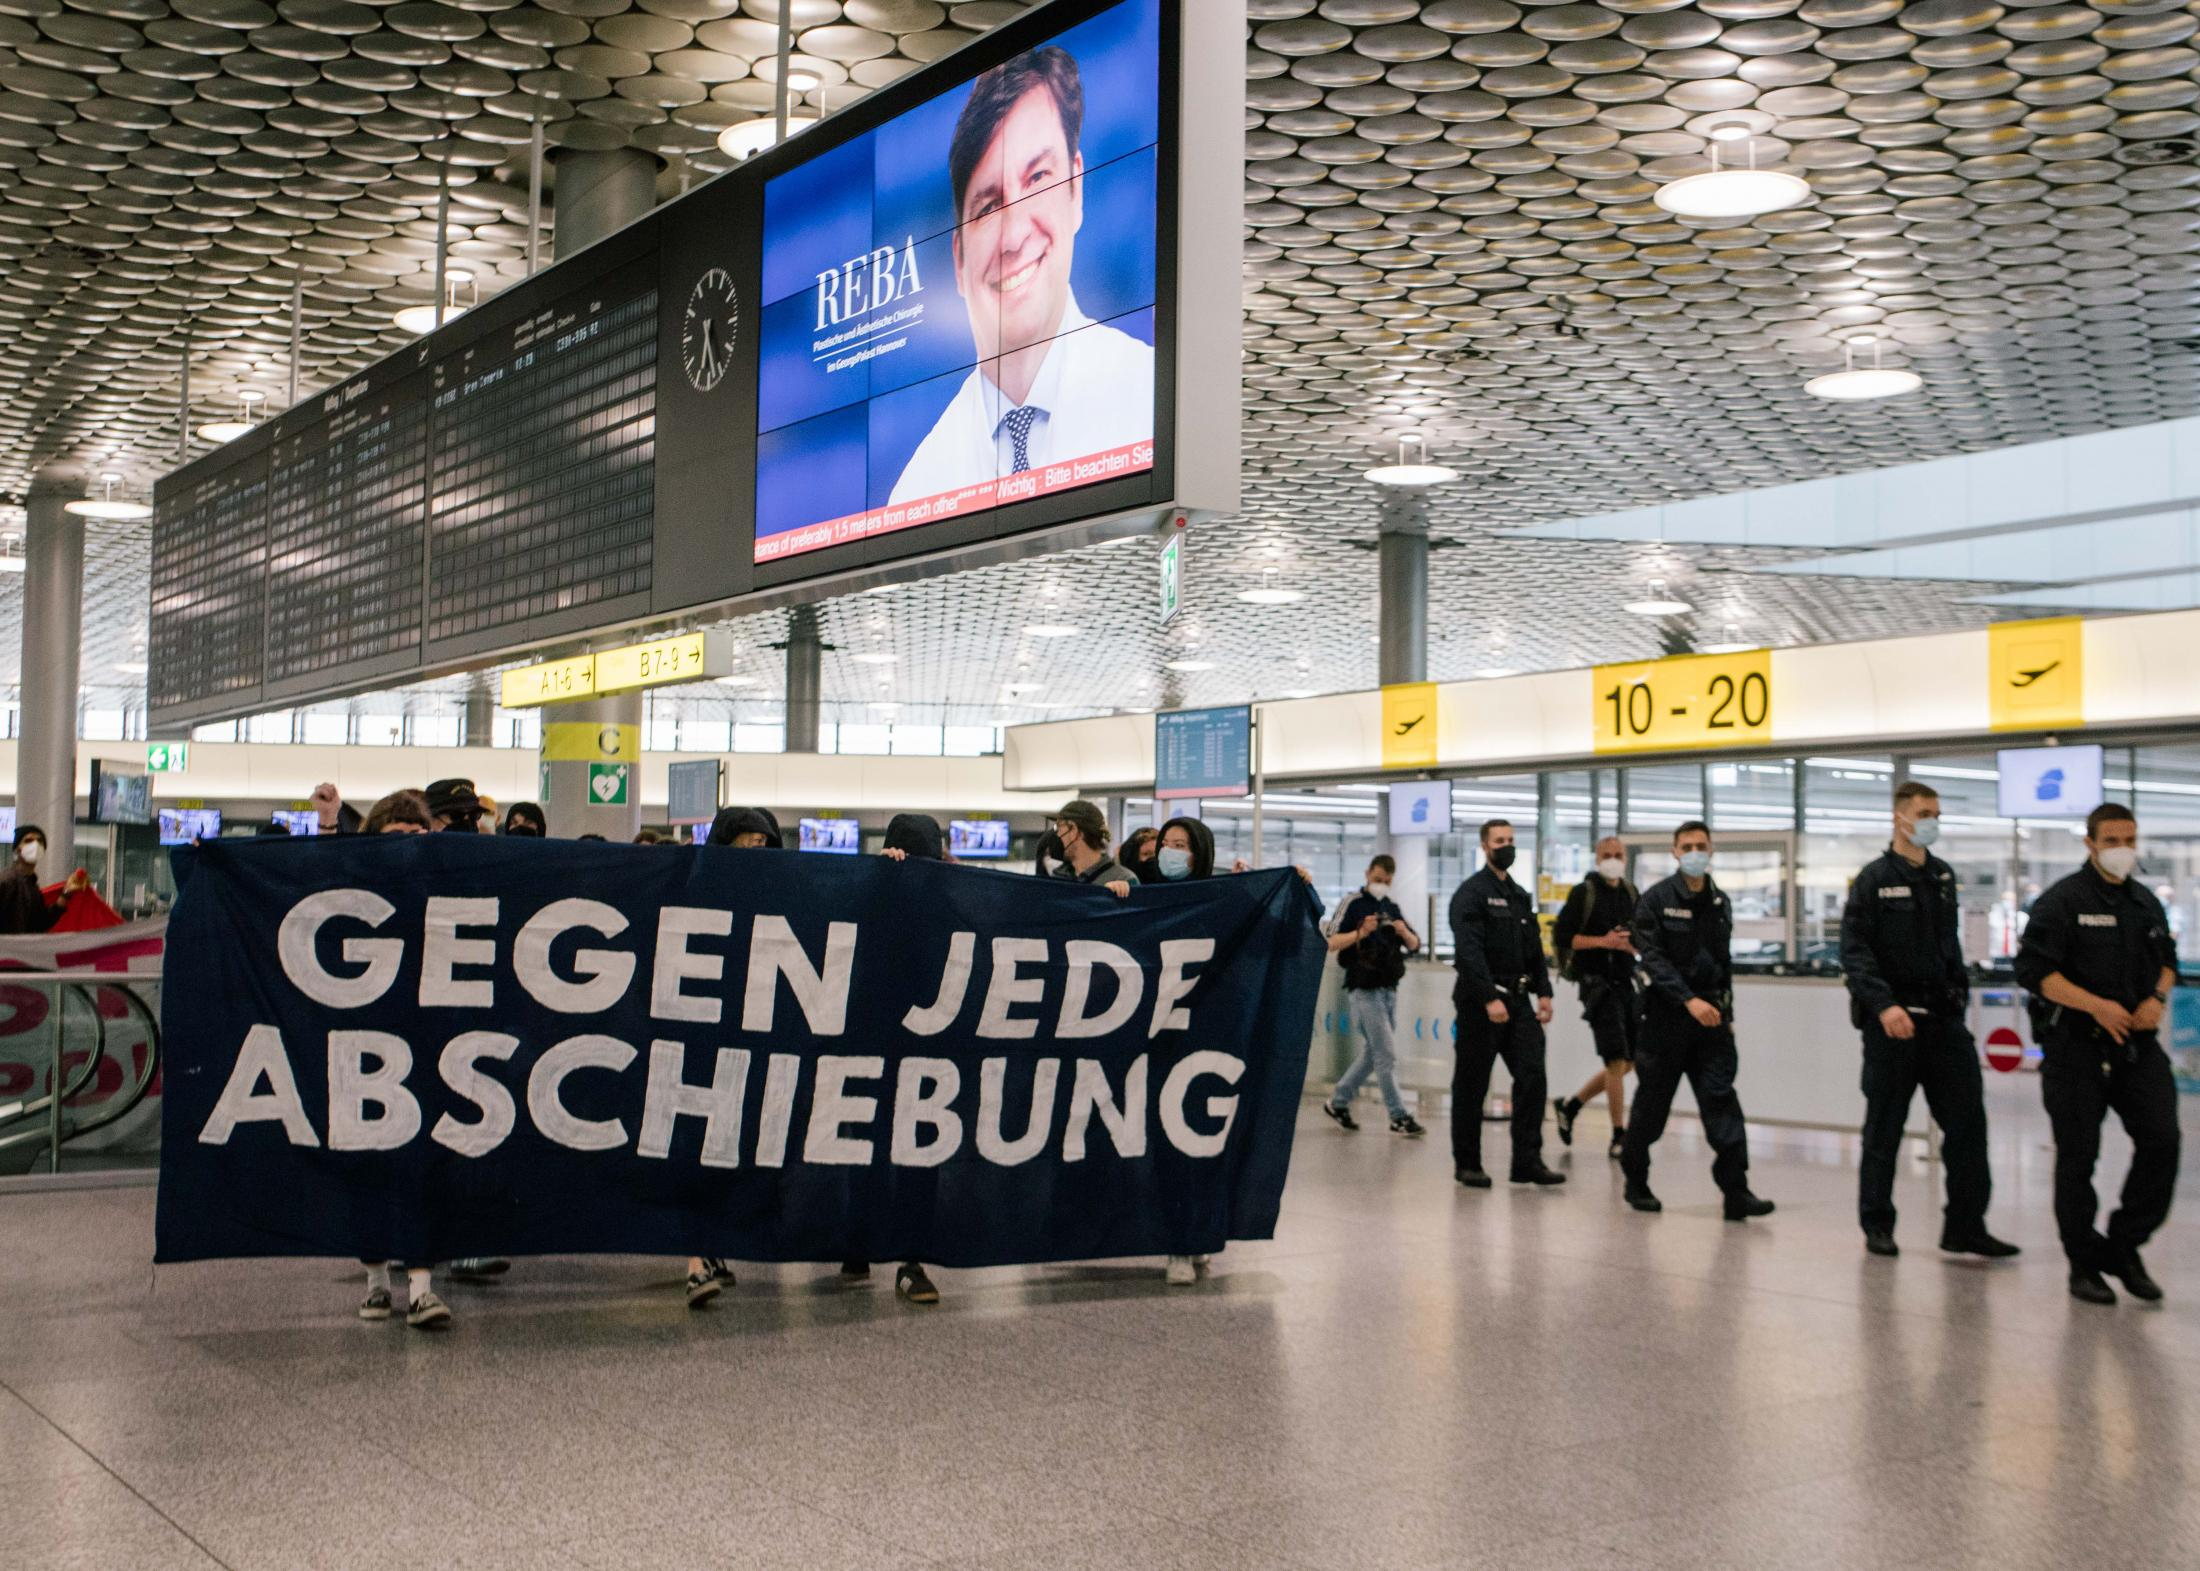 Againstevery deportations read a banner carried by activists at a protest against a deportations through Hanover airport. July 6th, 2021